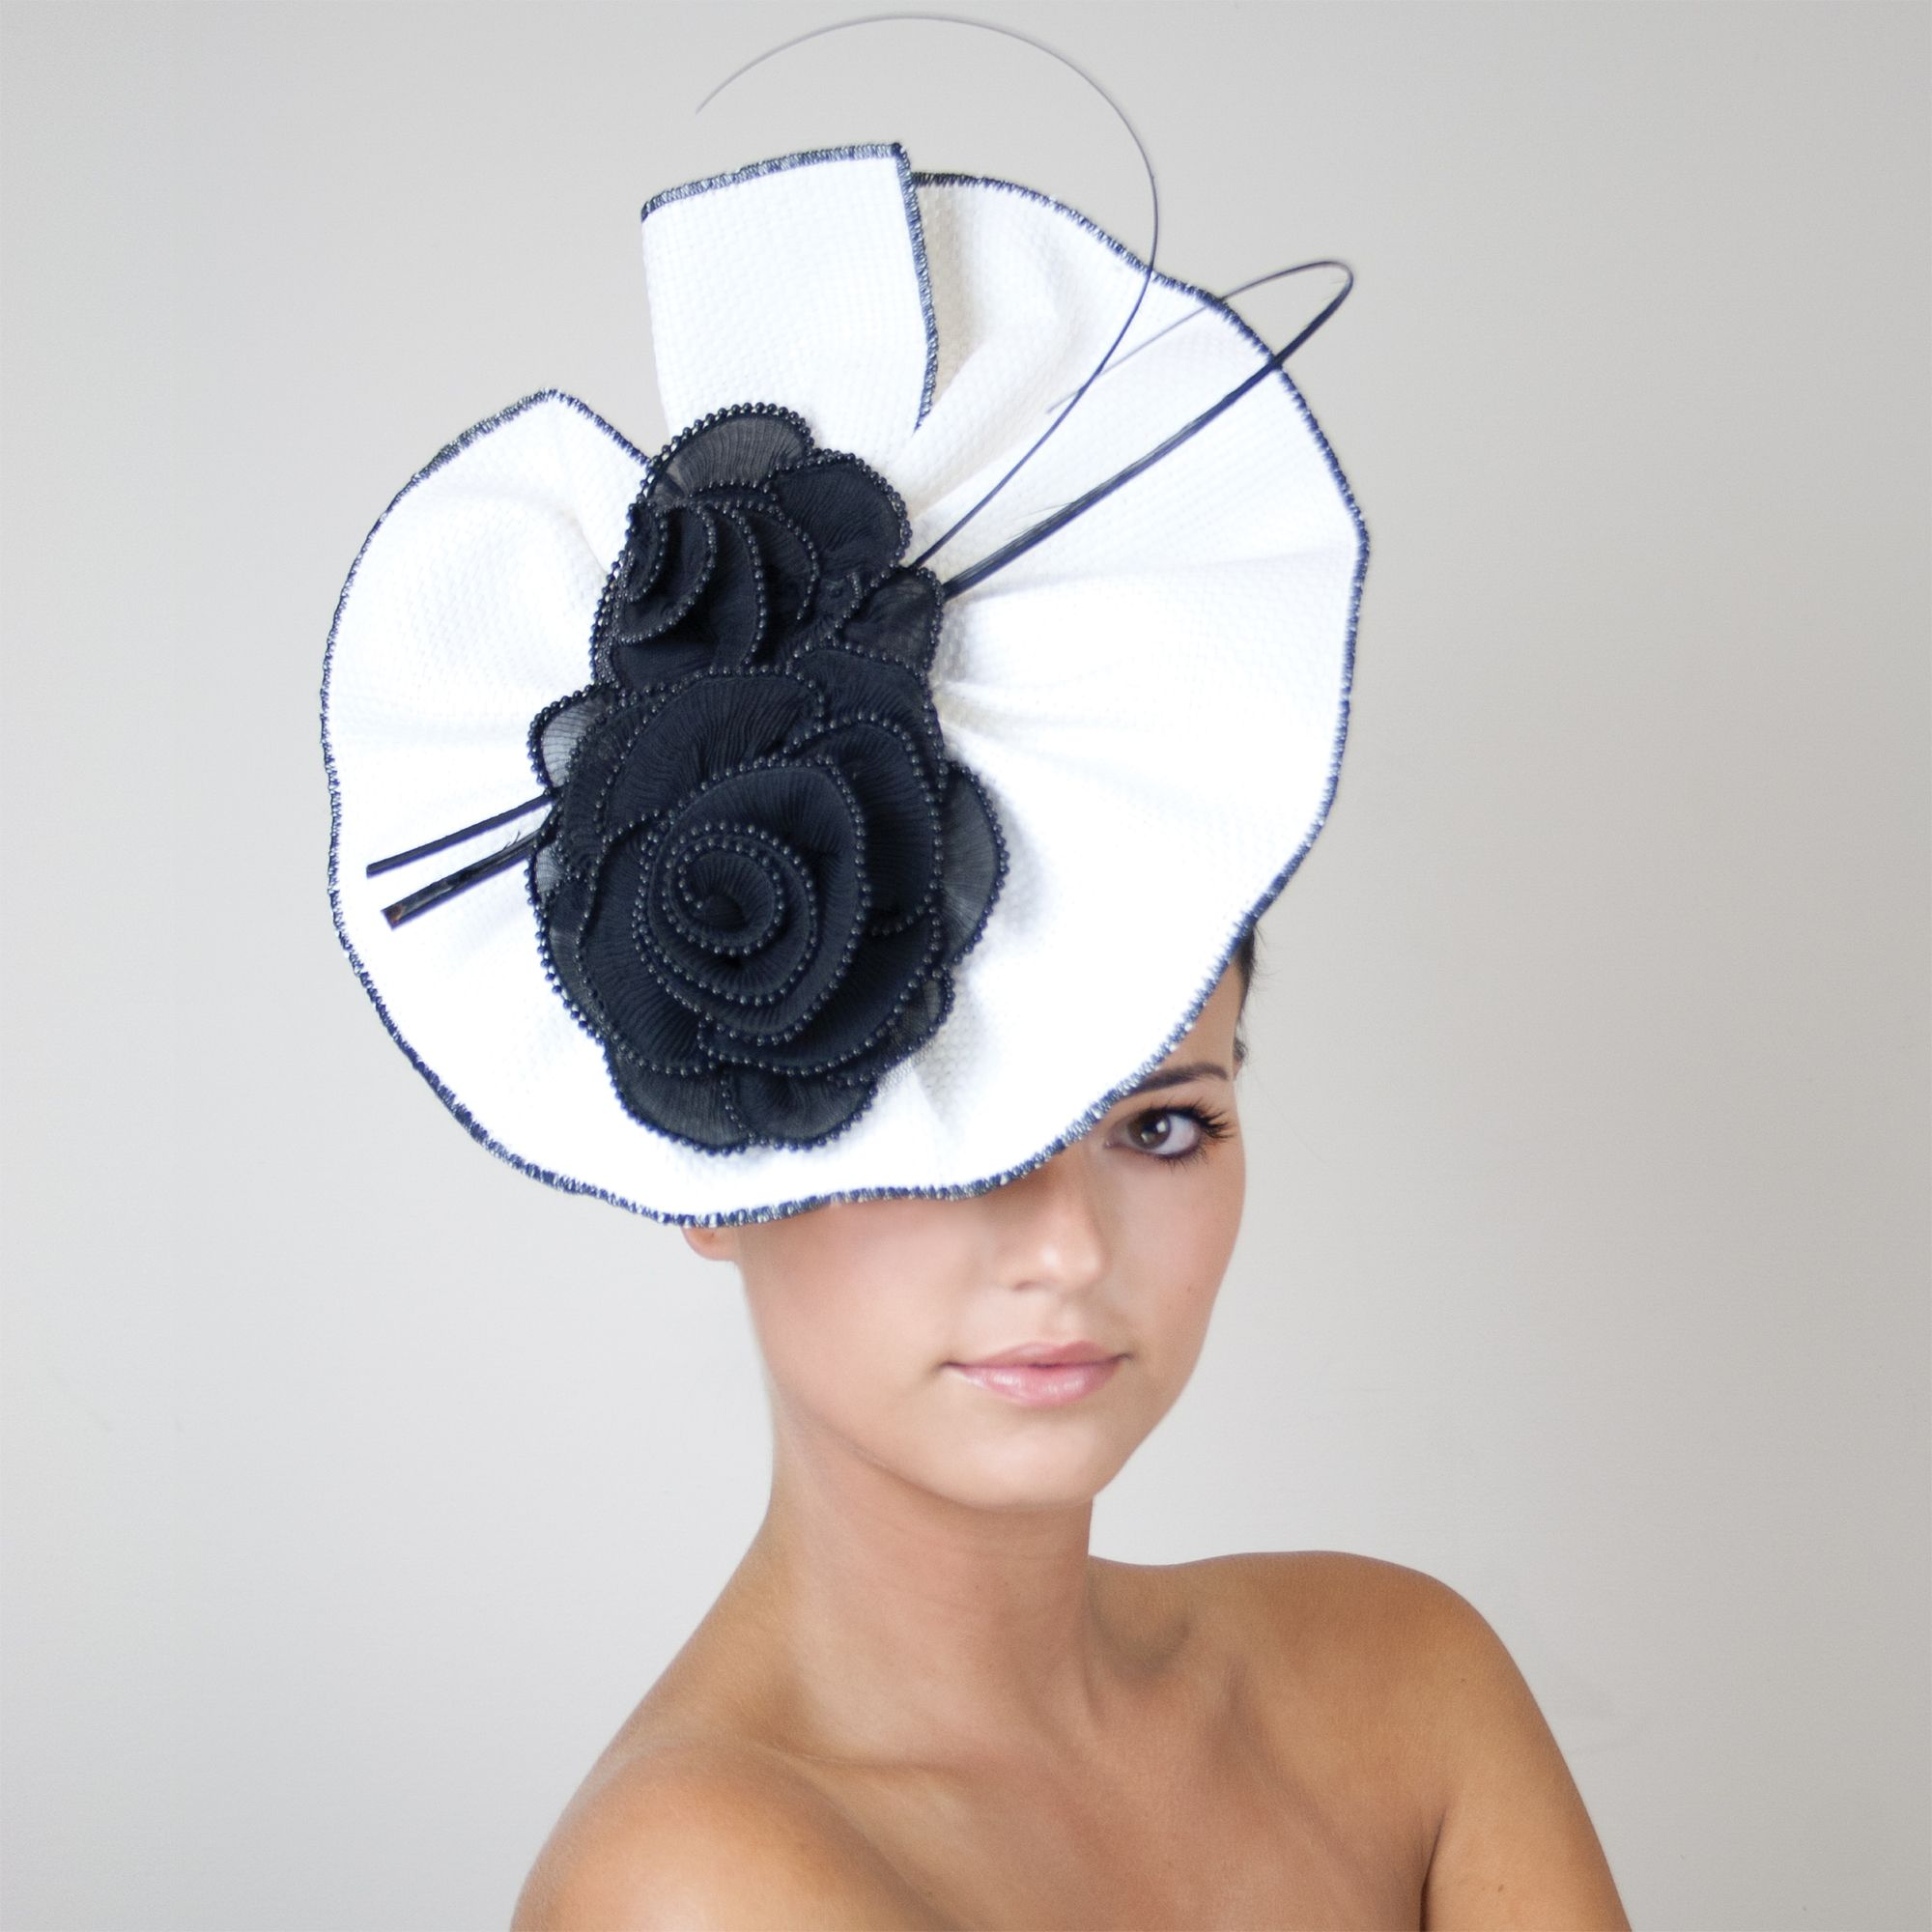 1000 Images About Black Fascinator On Pinterest: The Hat Store: Black And White Fascinator #classic